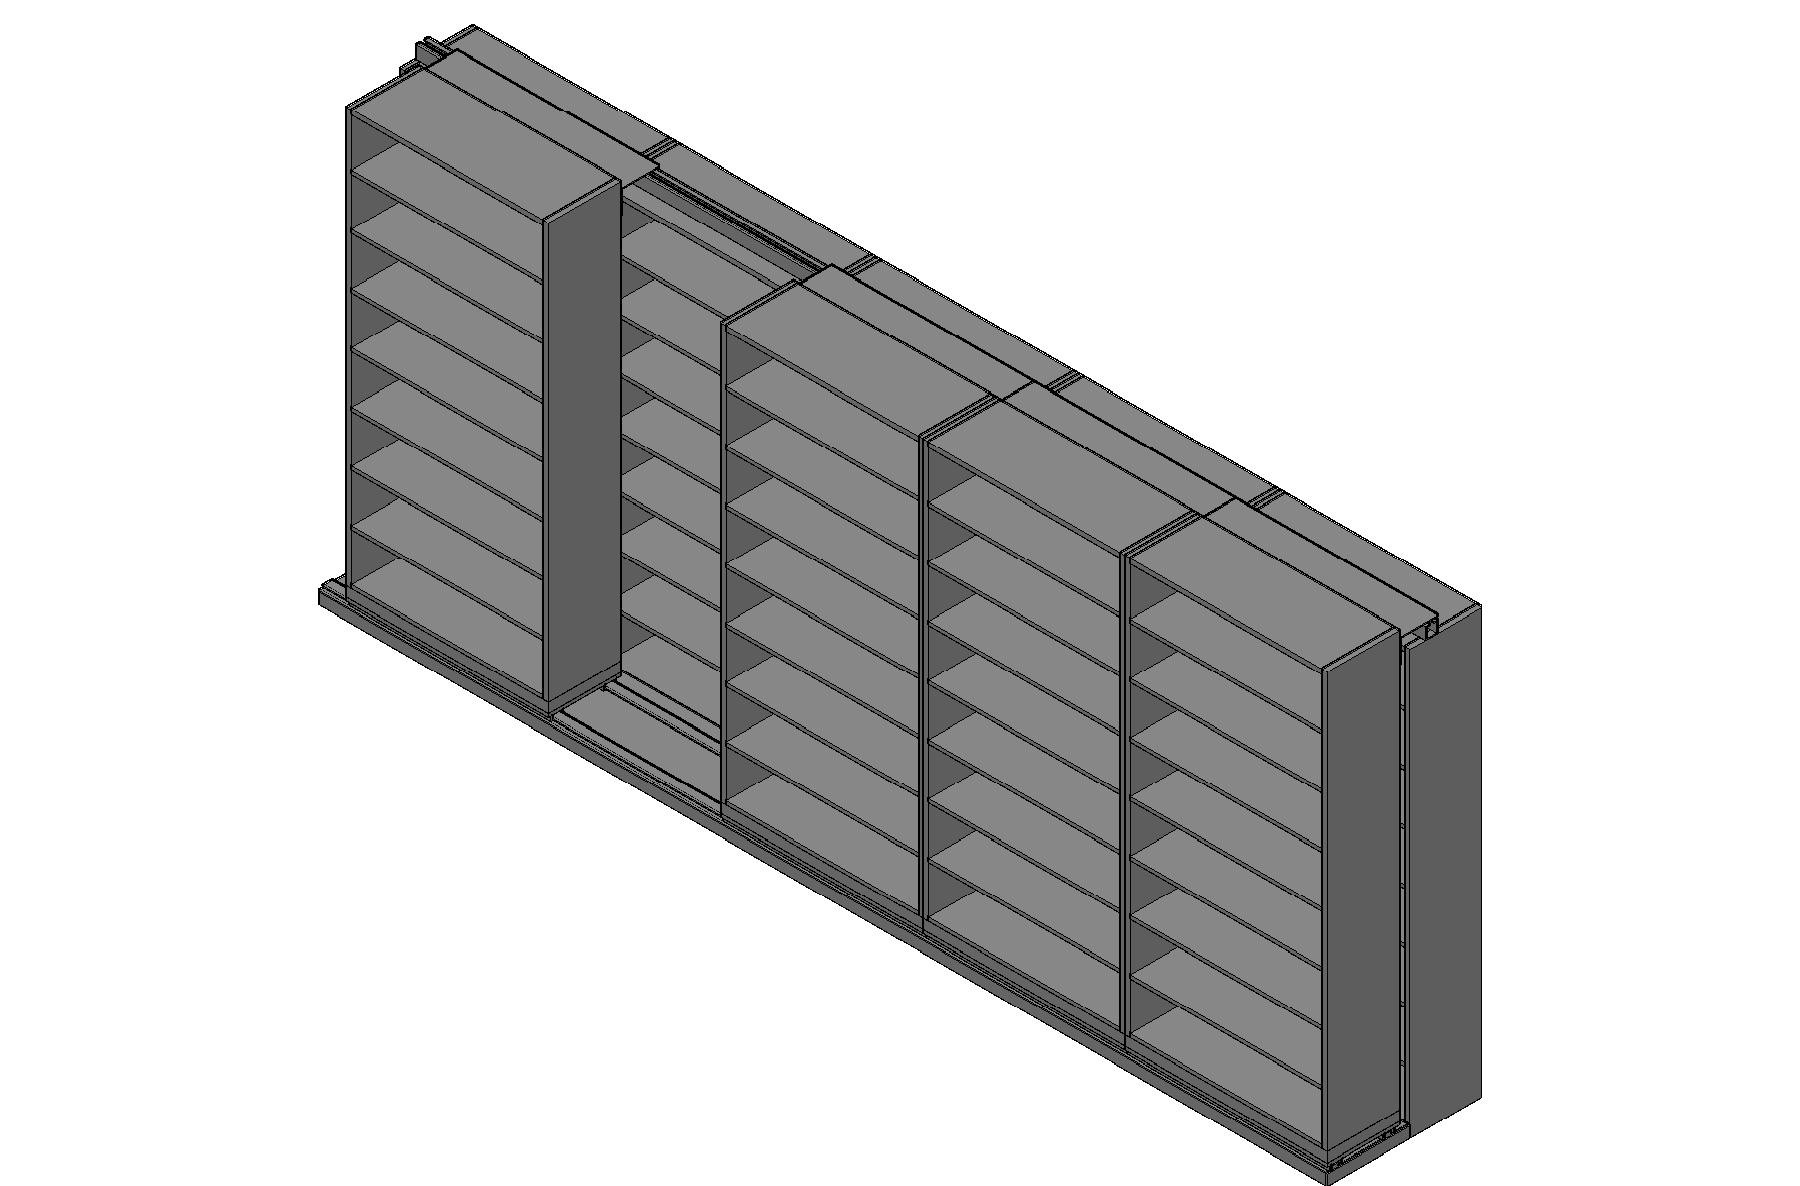 "Legal Size Sliding Shelves - 2 Rows Deep - 8 Levels - (42"" x 15"" Shelves) - 214"" Total Width"